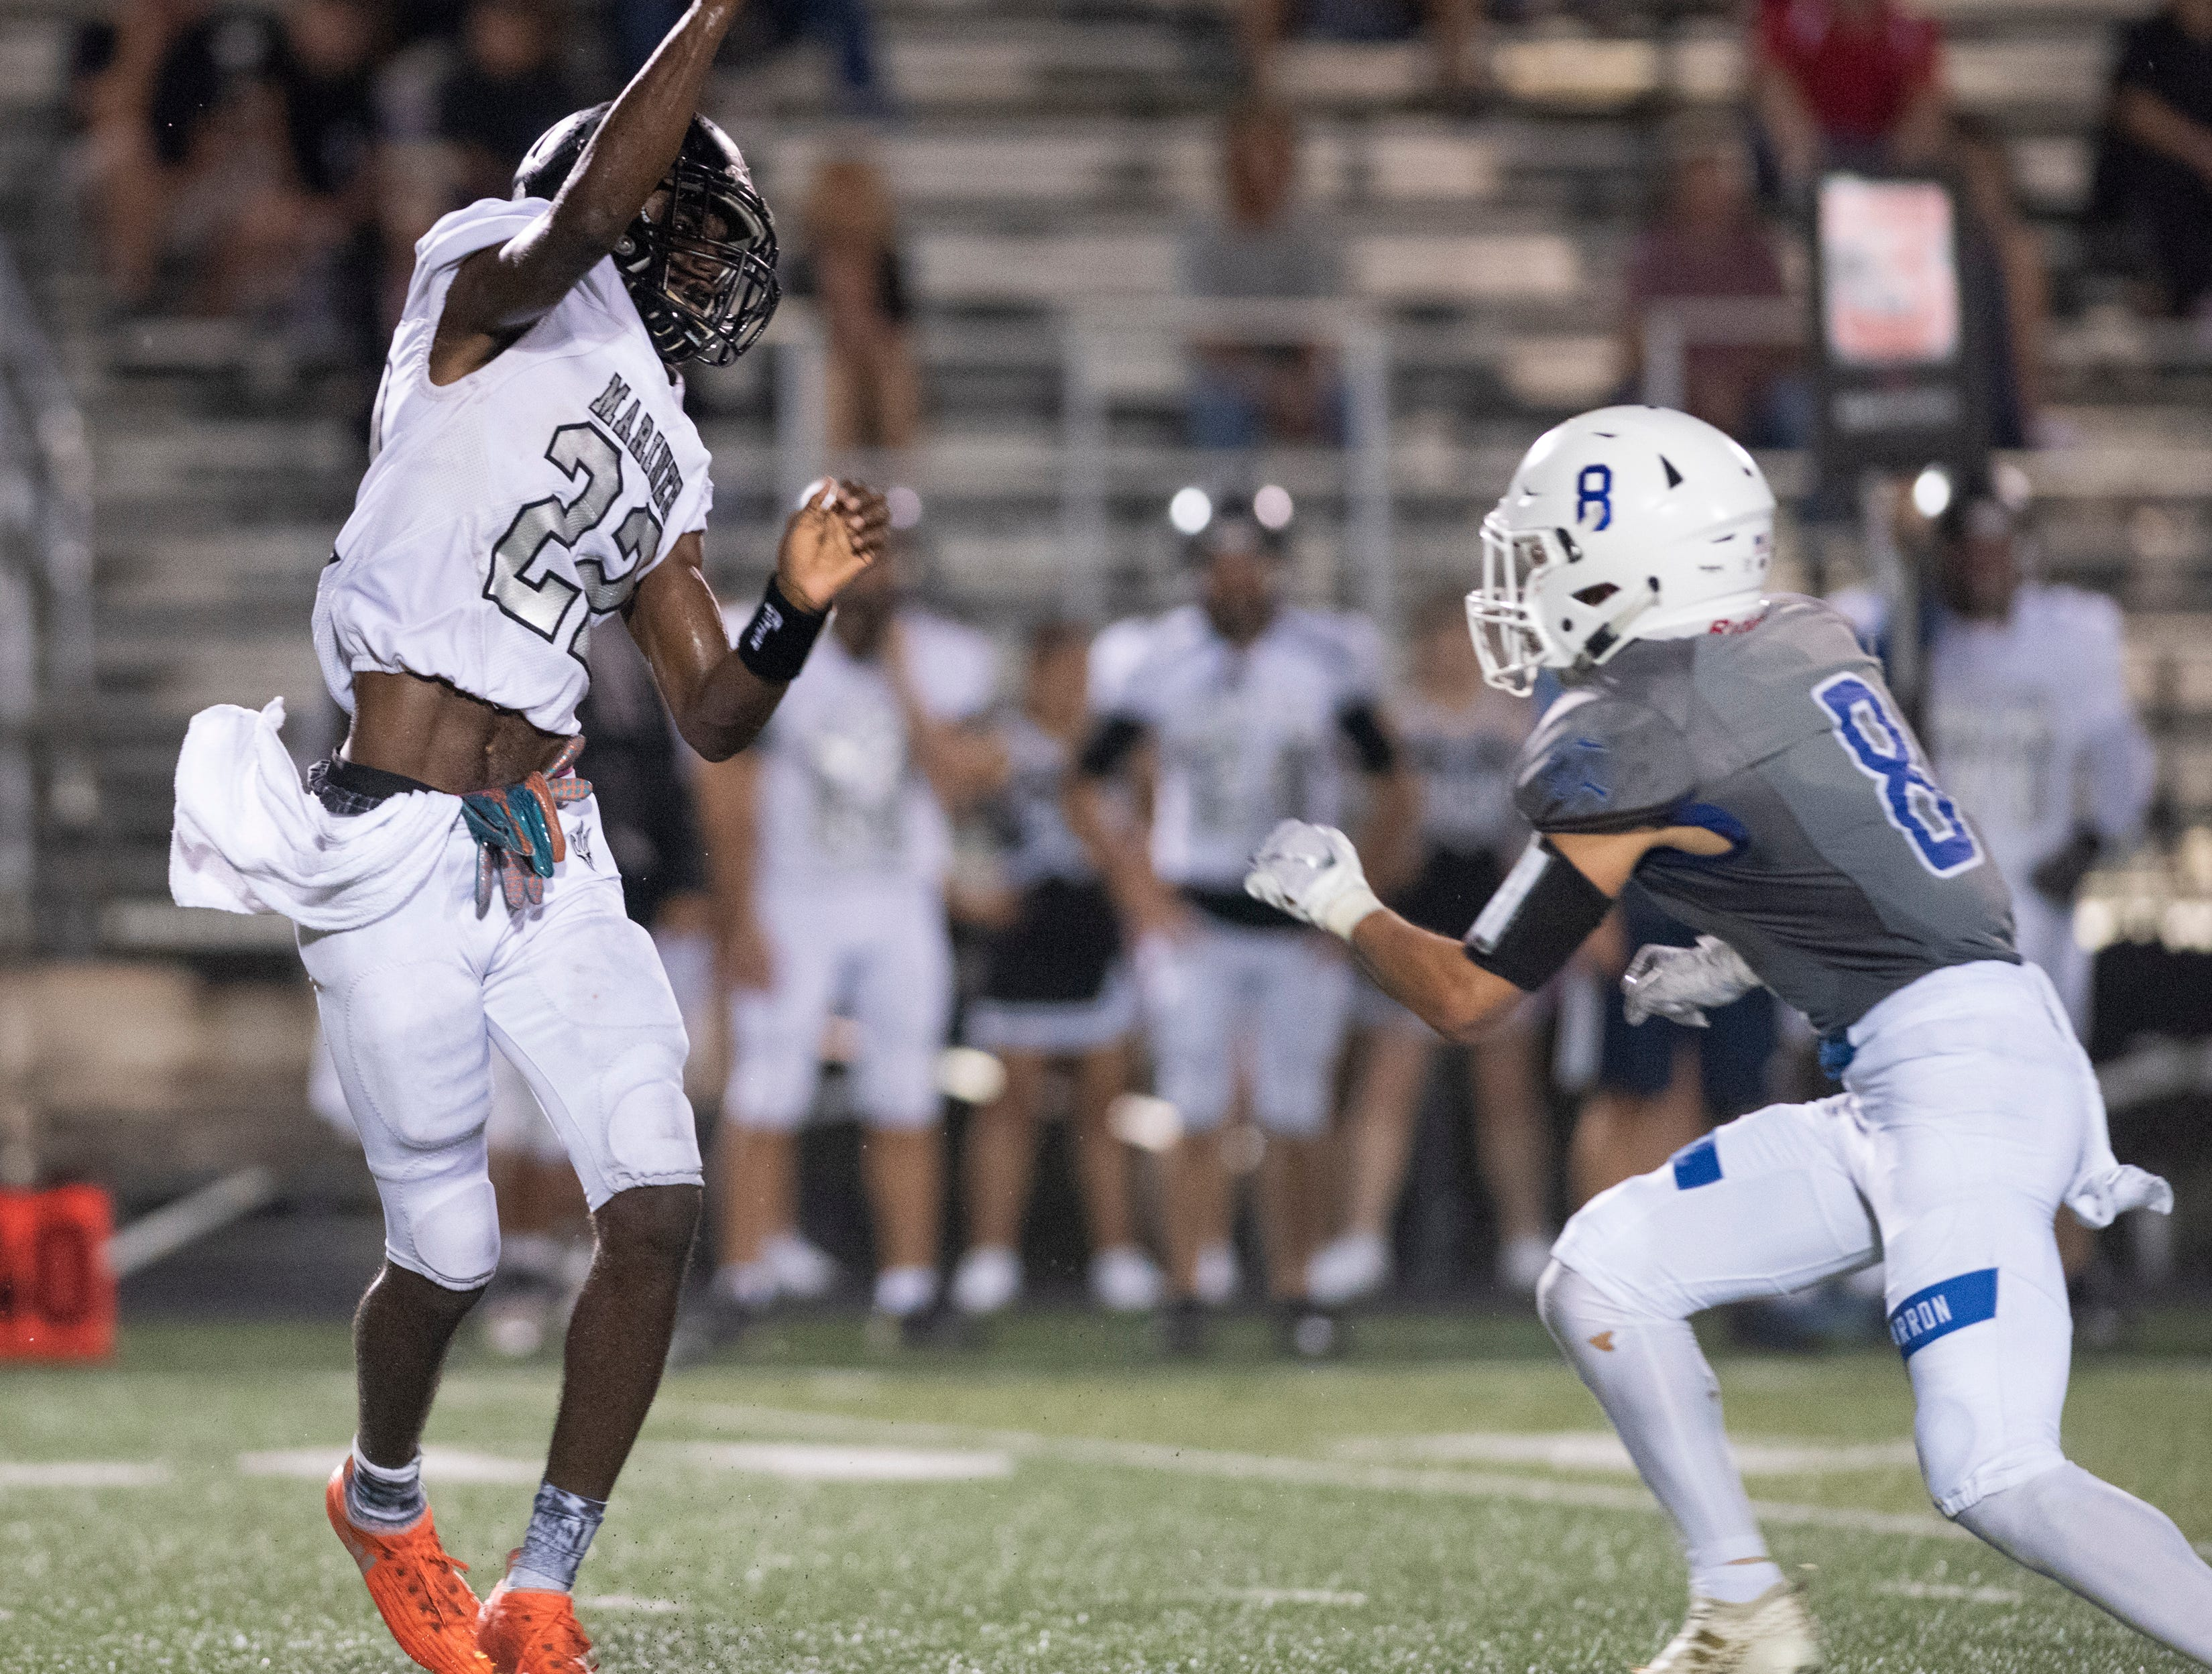 Mariner quarterback Rashawn Hunter throws a pass over Tyler Echeverry of Barron Collier during the game at Barron Collier High Friday night, September 21, 2018.